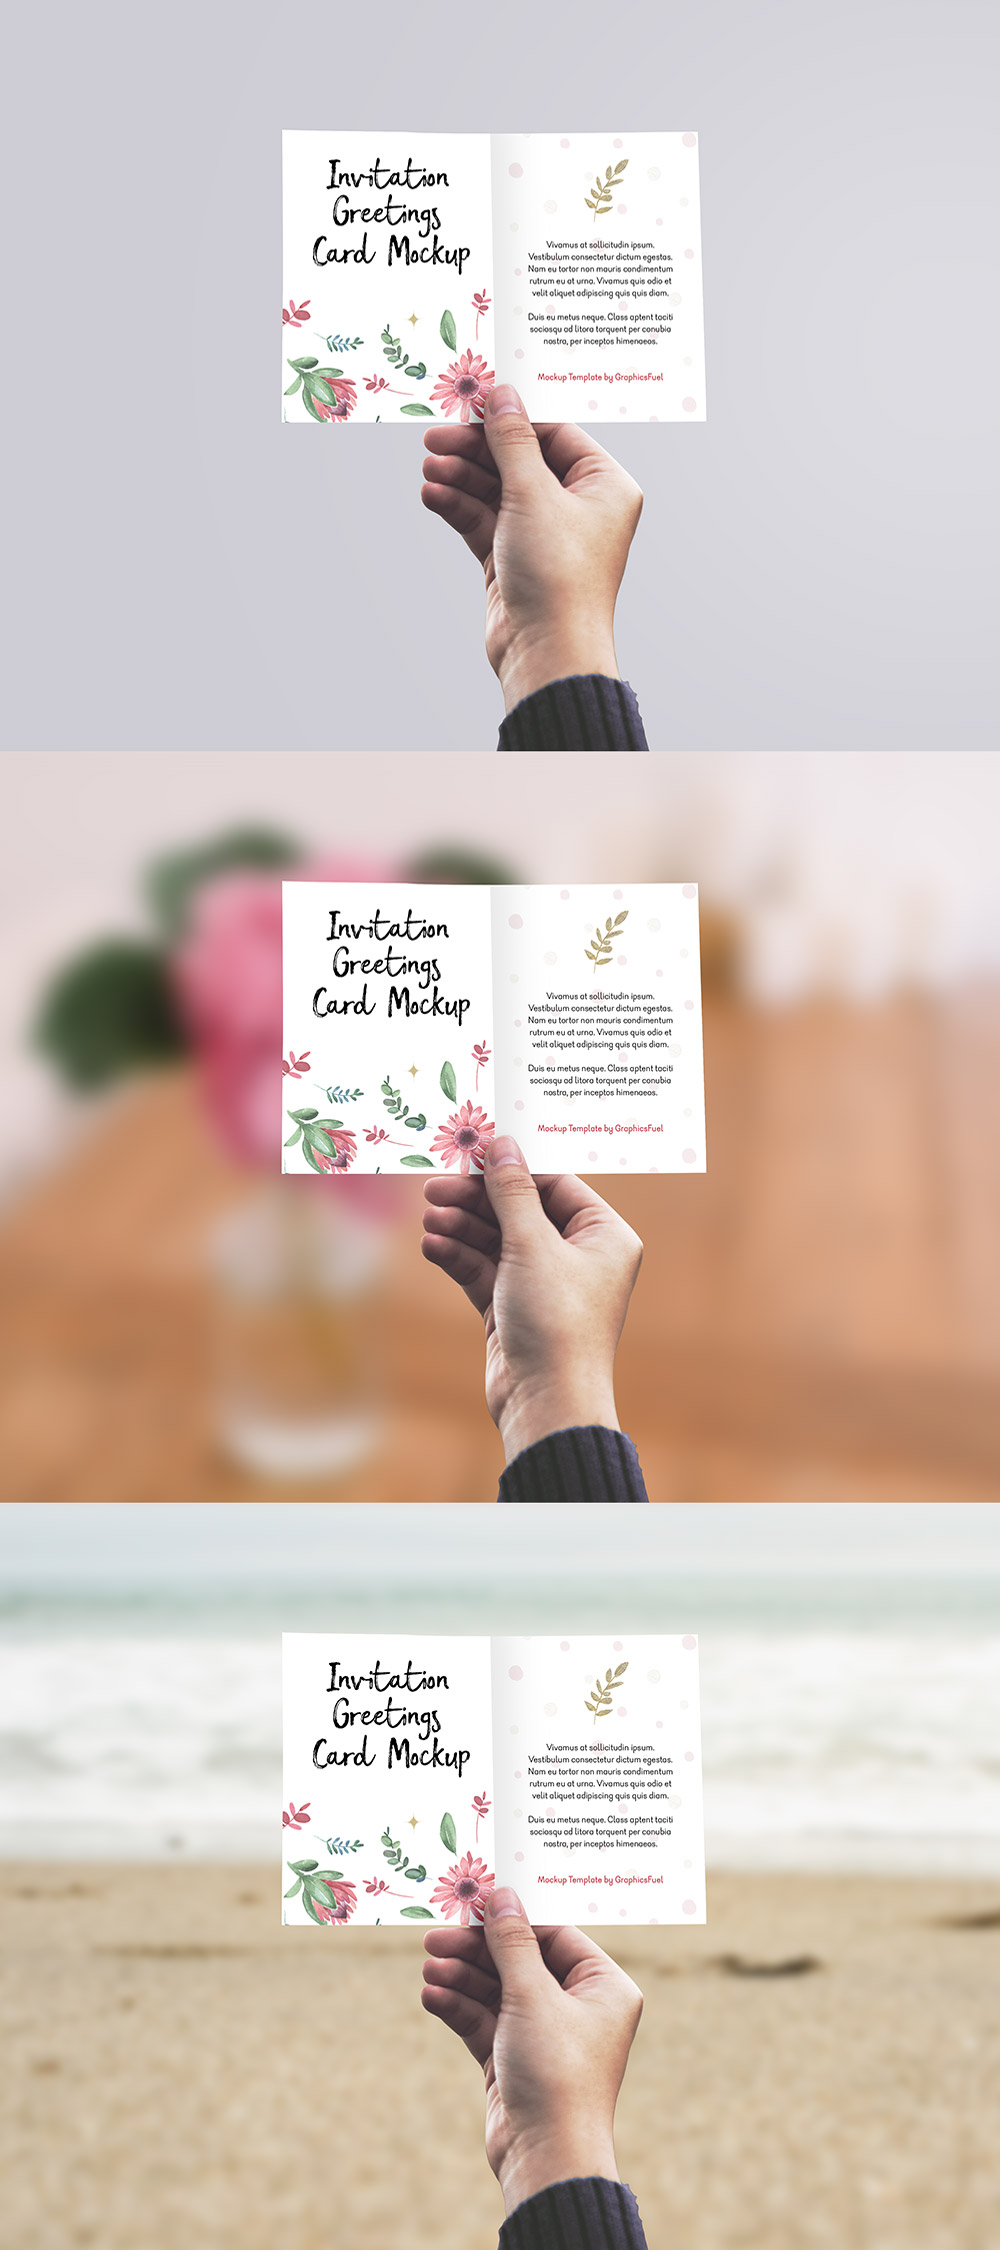 Invitation or Greeting Card Mockup PSD